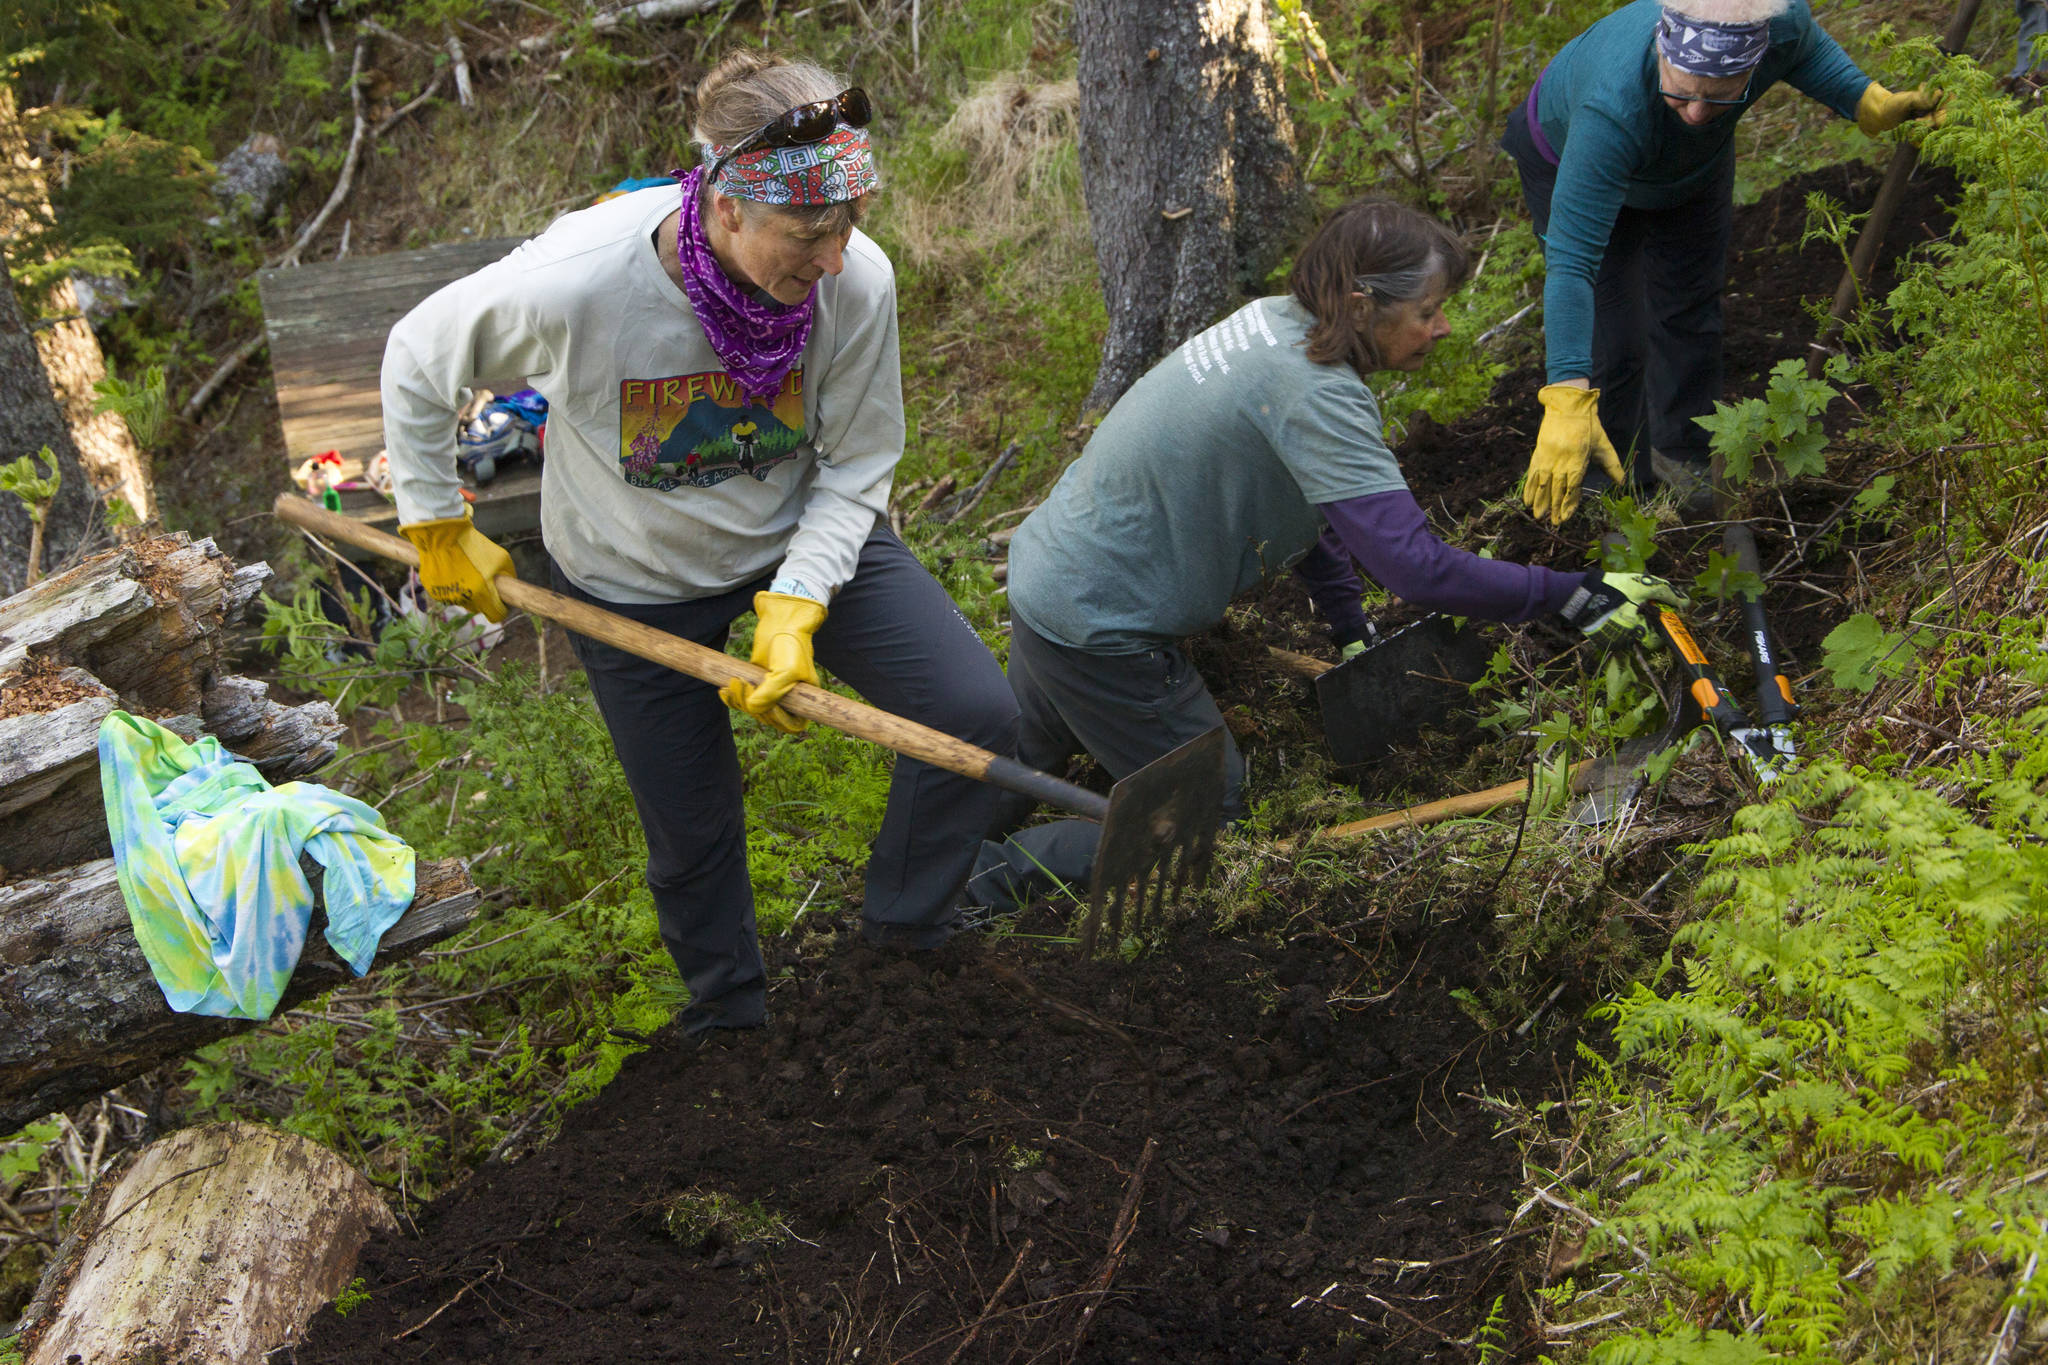 Kathy Sarns, Ruth Dickerson and Lyn Maslow work together to rebuild the trail tread at South Eldred Trail during National Trails Day. (Photo by Sarah Knapp/Homer News)